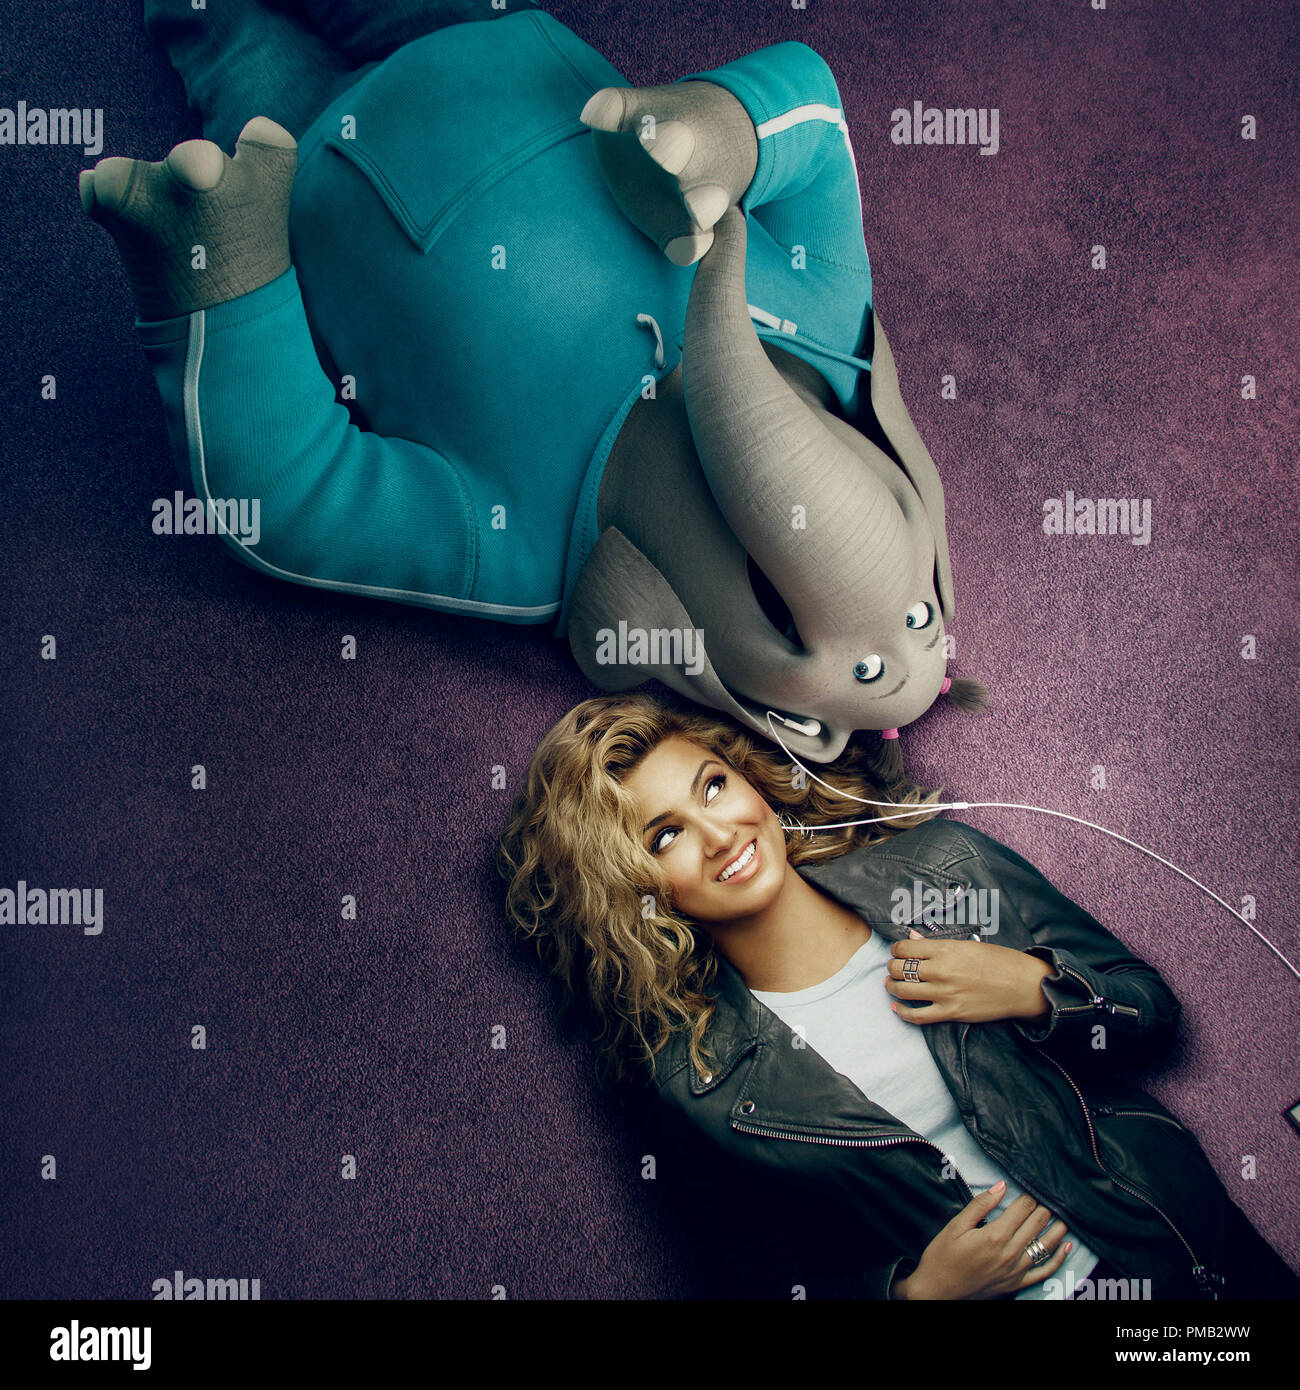 """TORI KELLY appears with her character, Meena, from the event film """"Sing,"""" from Illumination Entertainment and Universal Pictures. (2016) - Stock Image"""